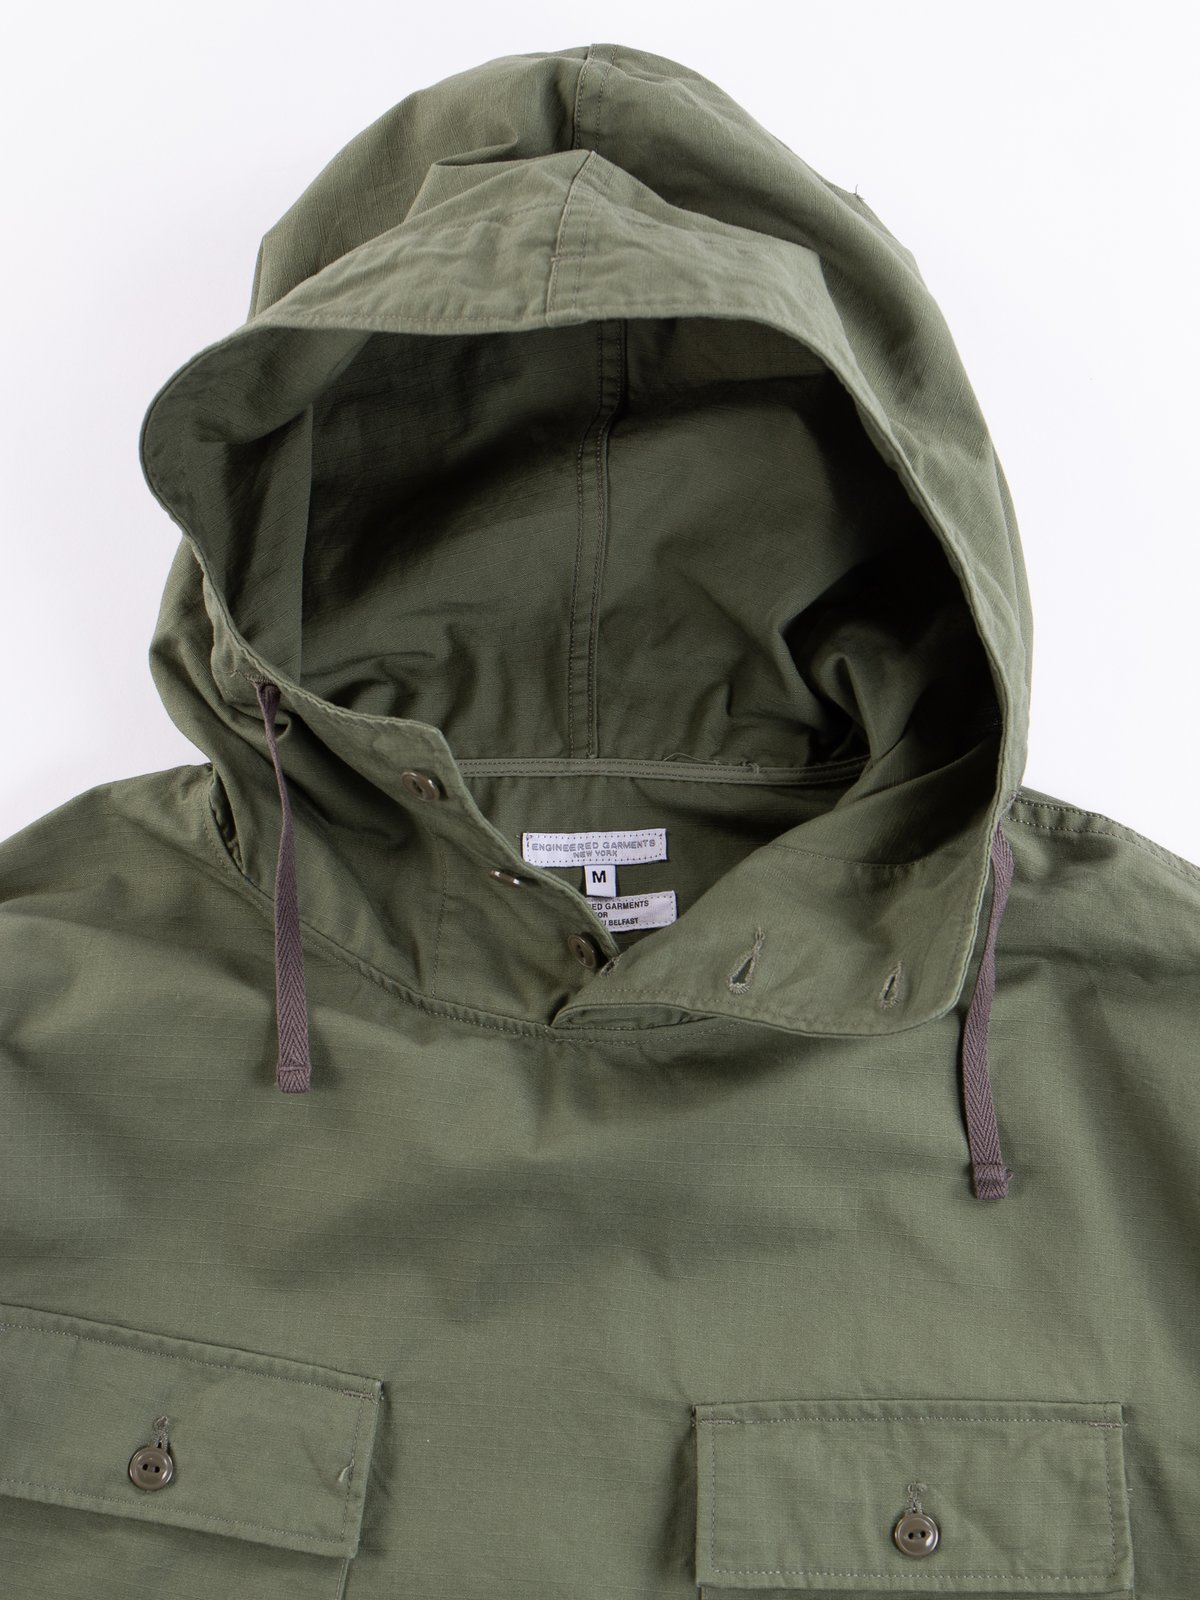 Olive Cotton Ripstop Cagoule Shirt - Image 6